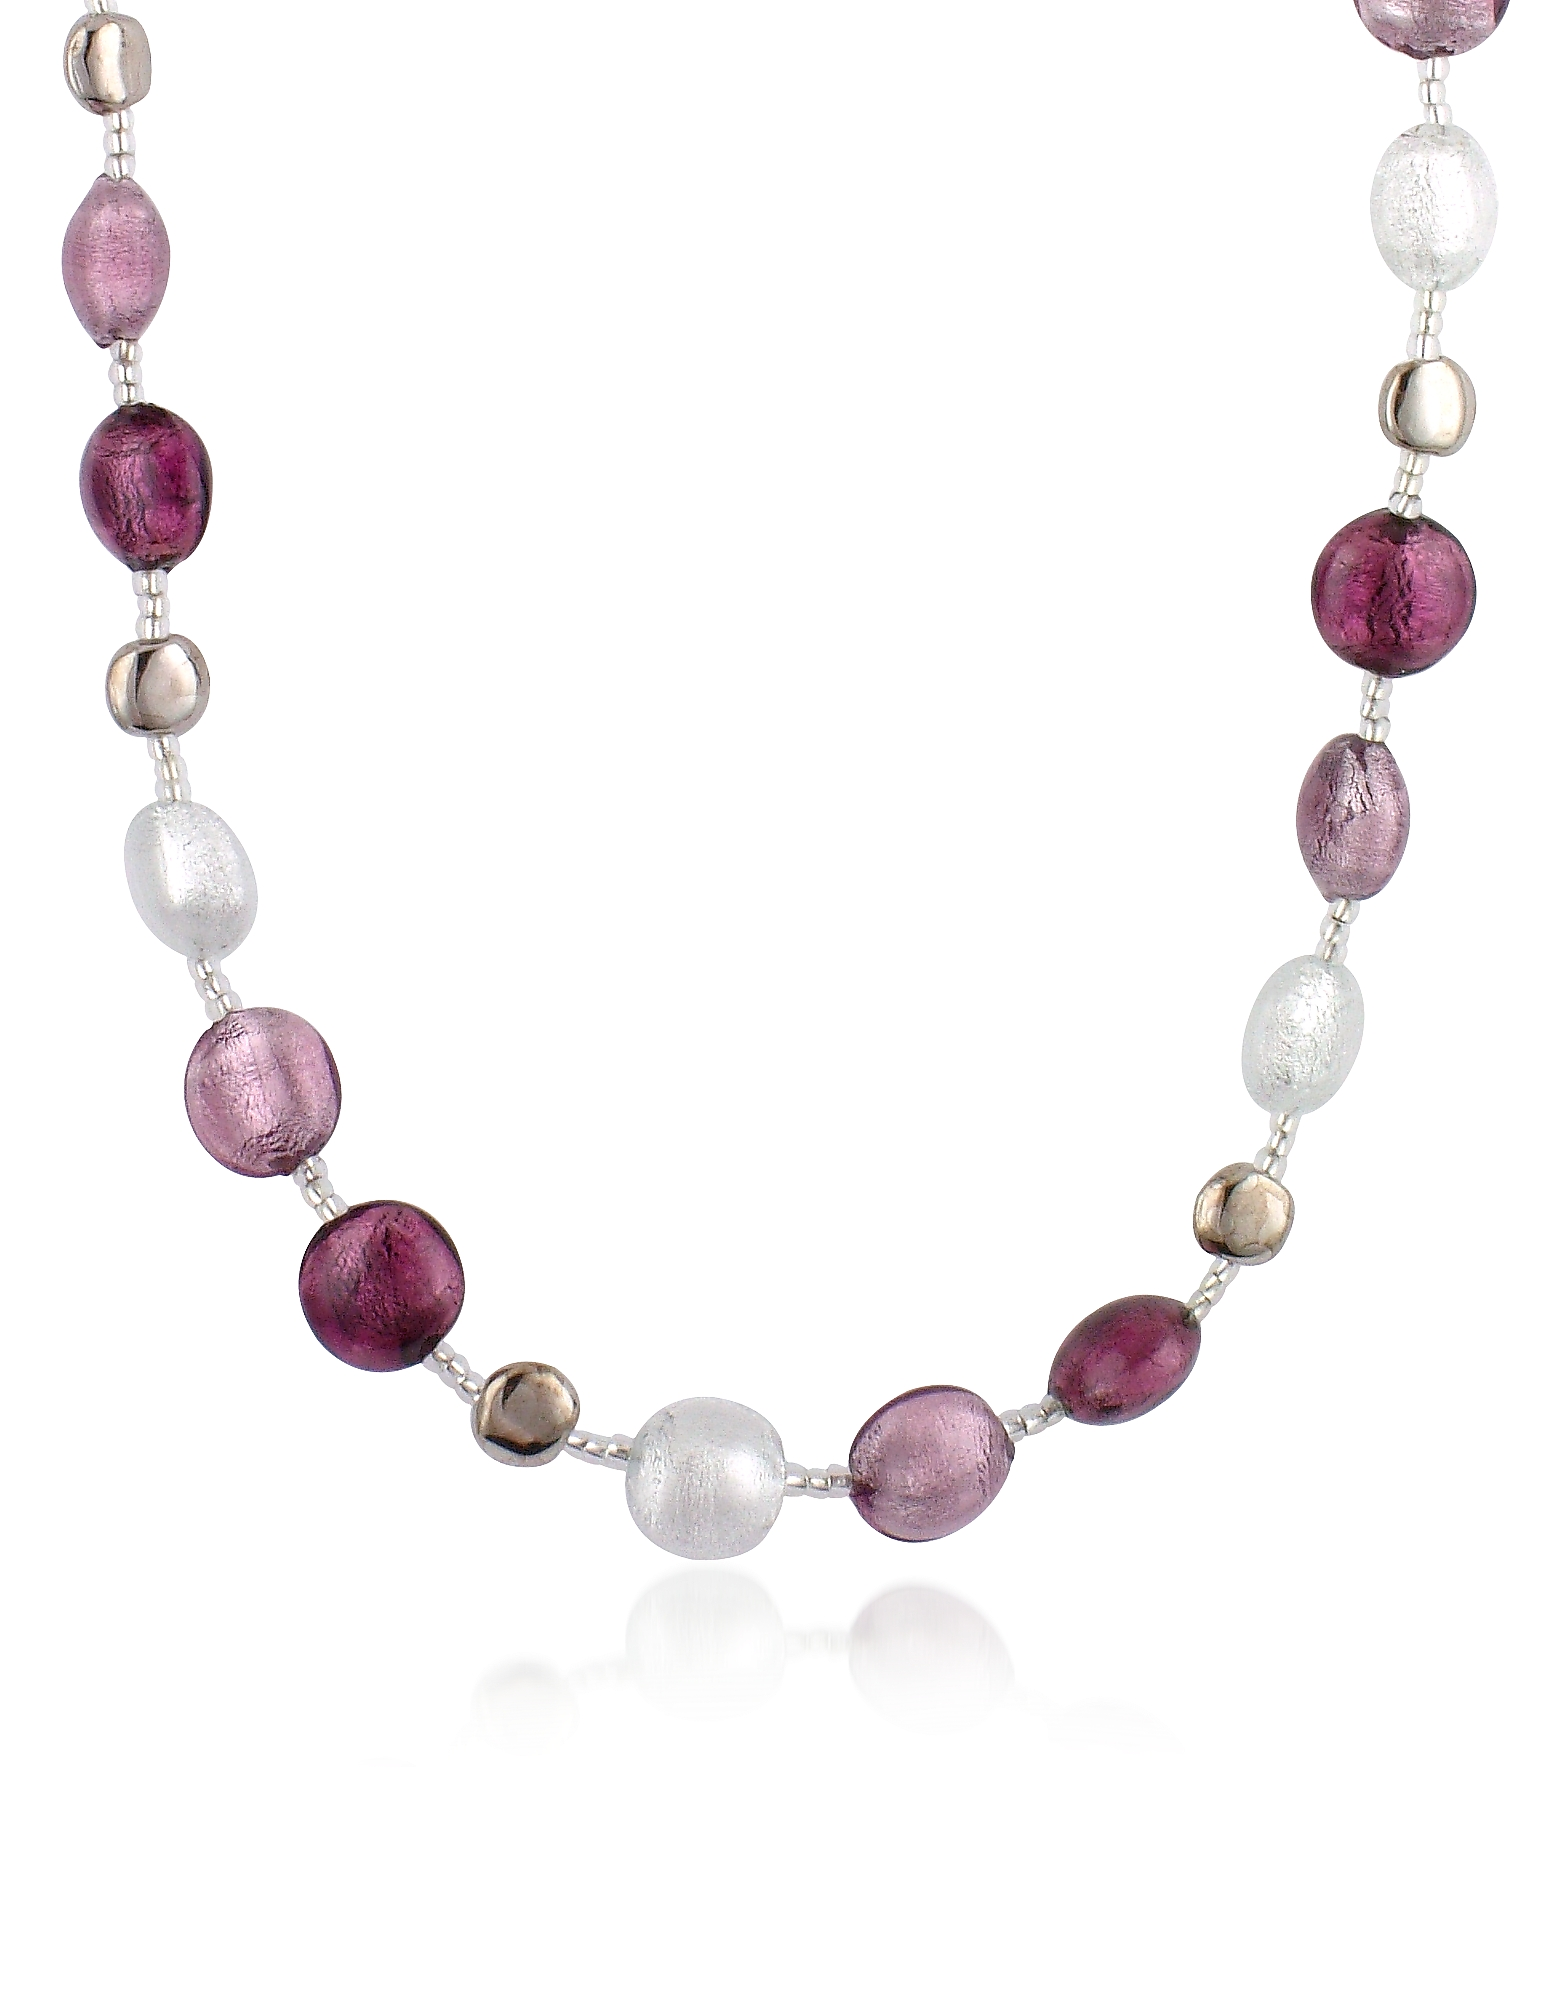 Antica Murrina Necklaces, Frida - Murano Glass Bead Necklace